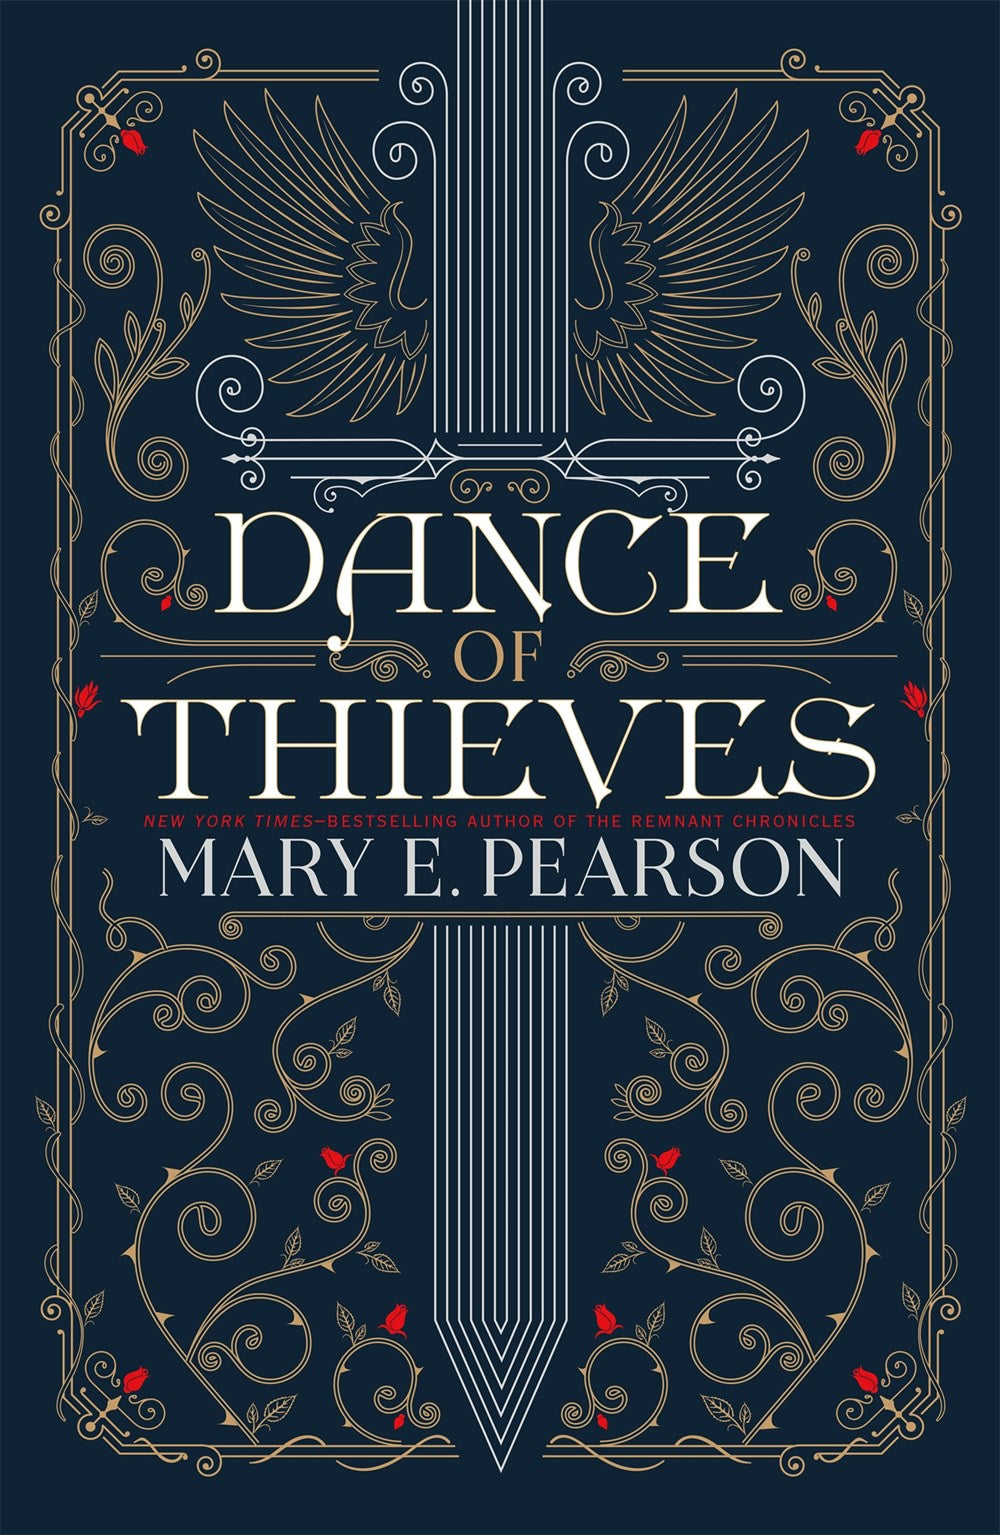 DANCE OF THIEVES (PB)